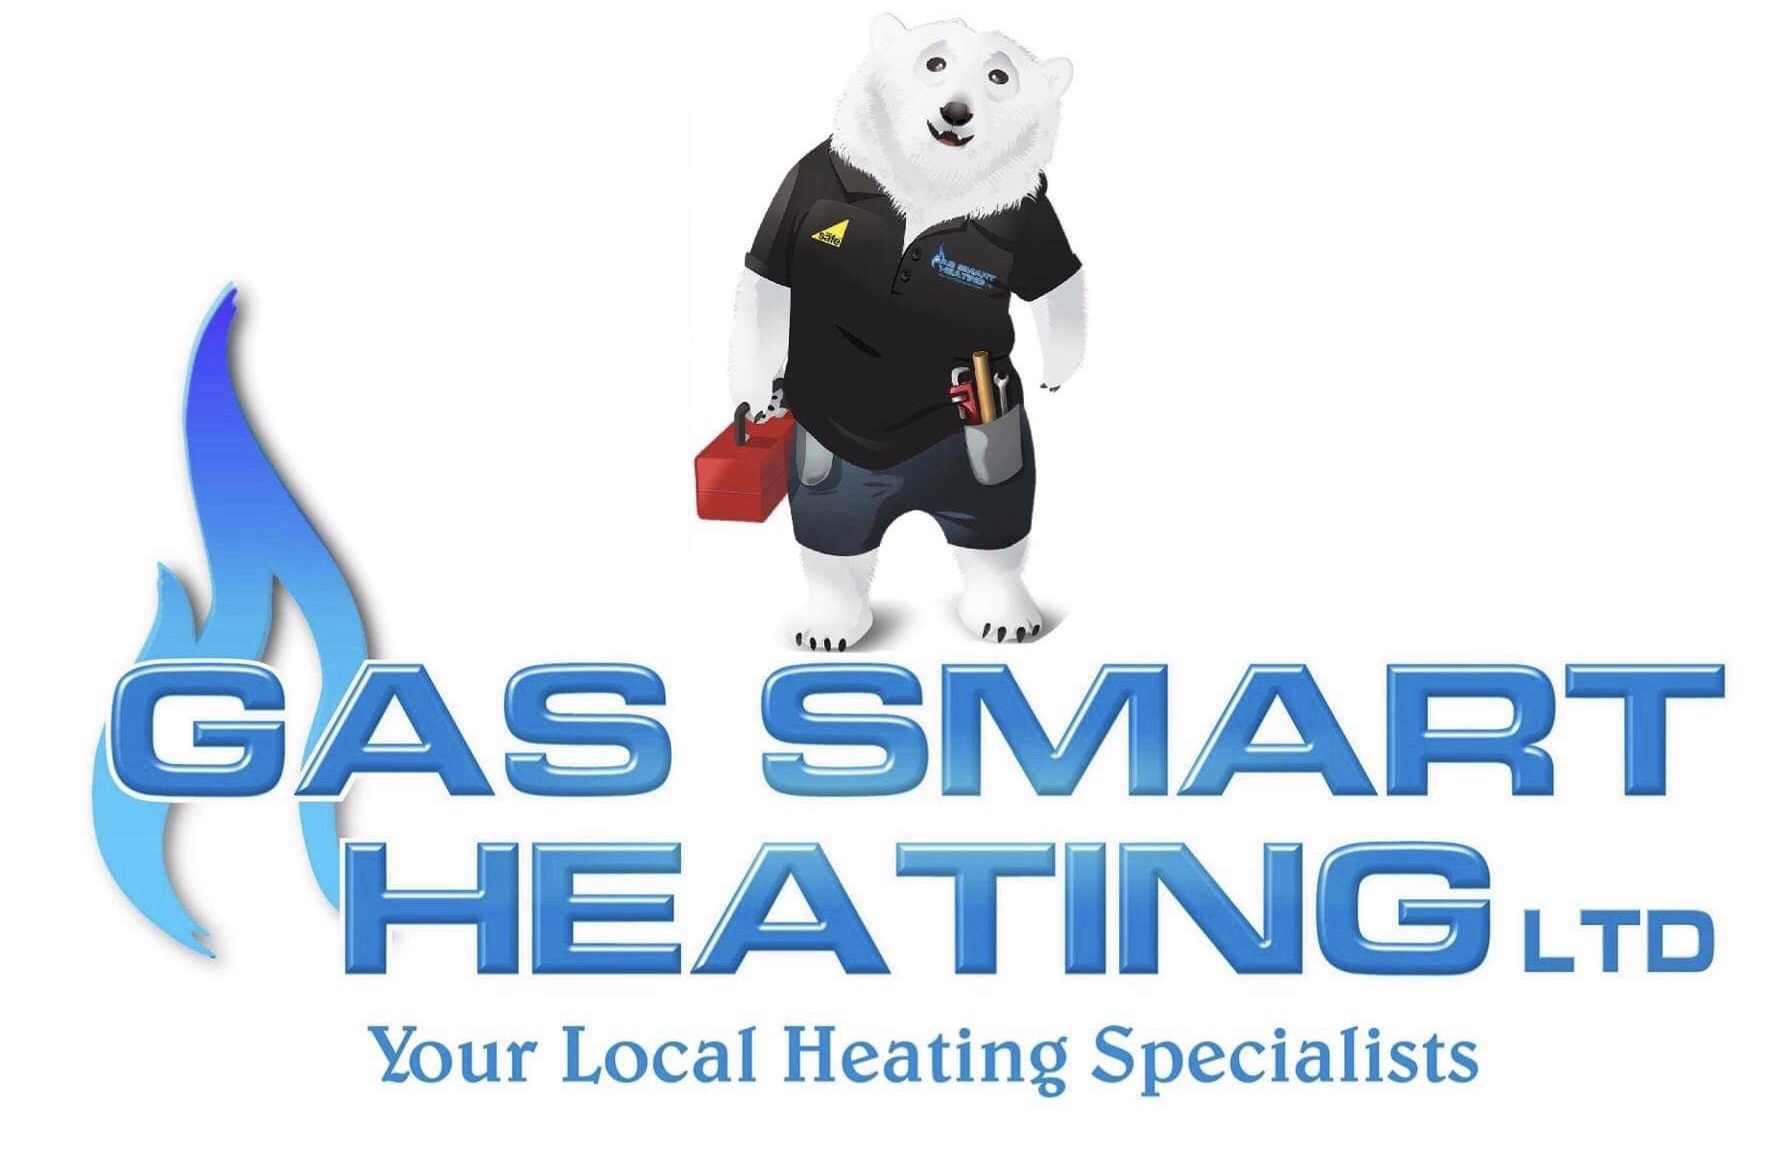 Gas smart heating ltd